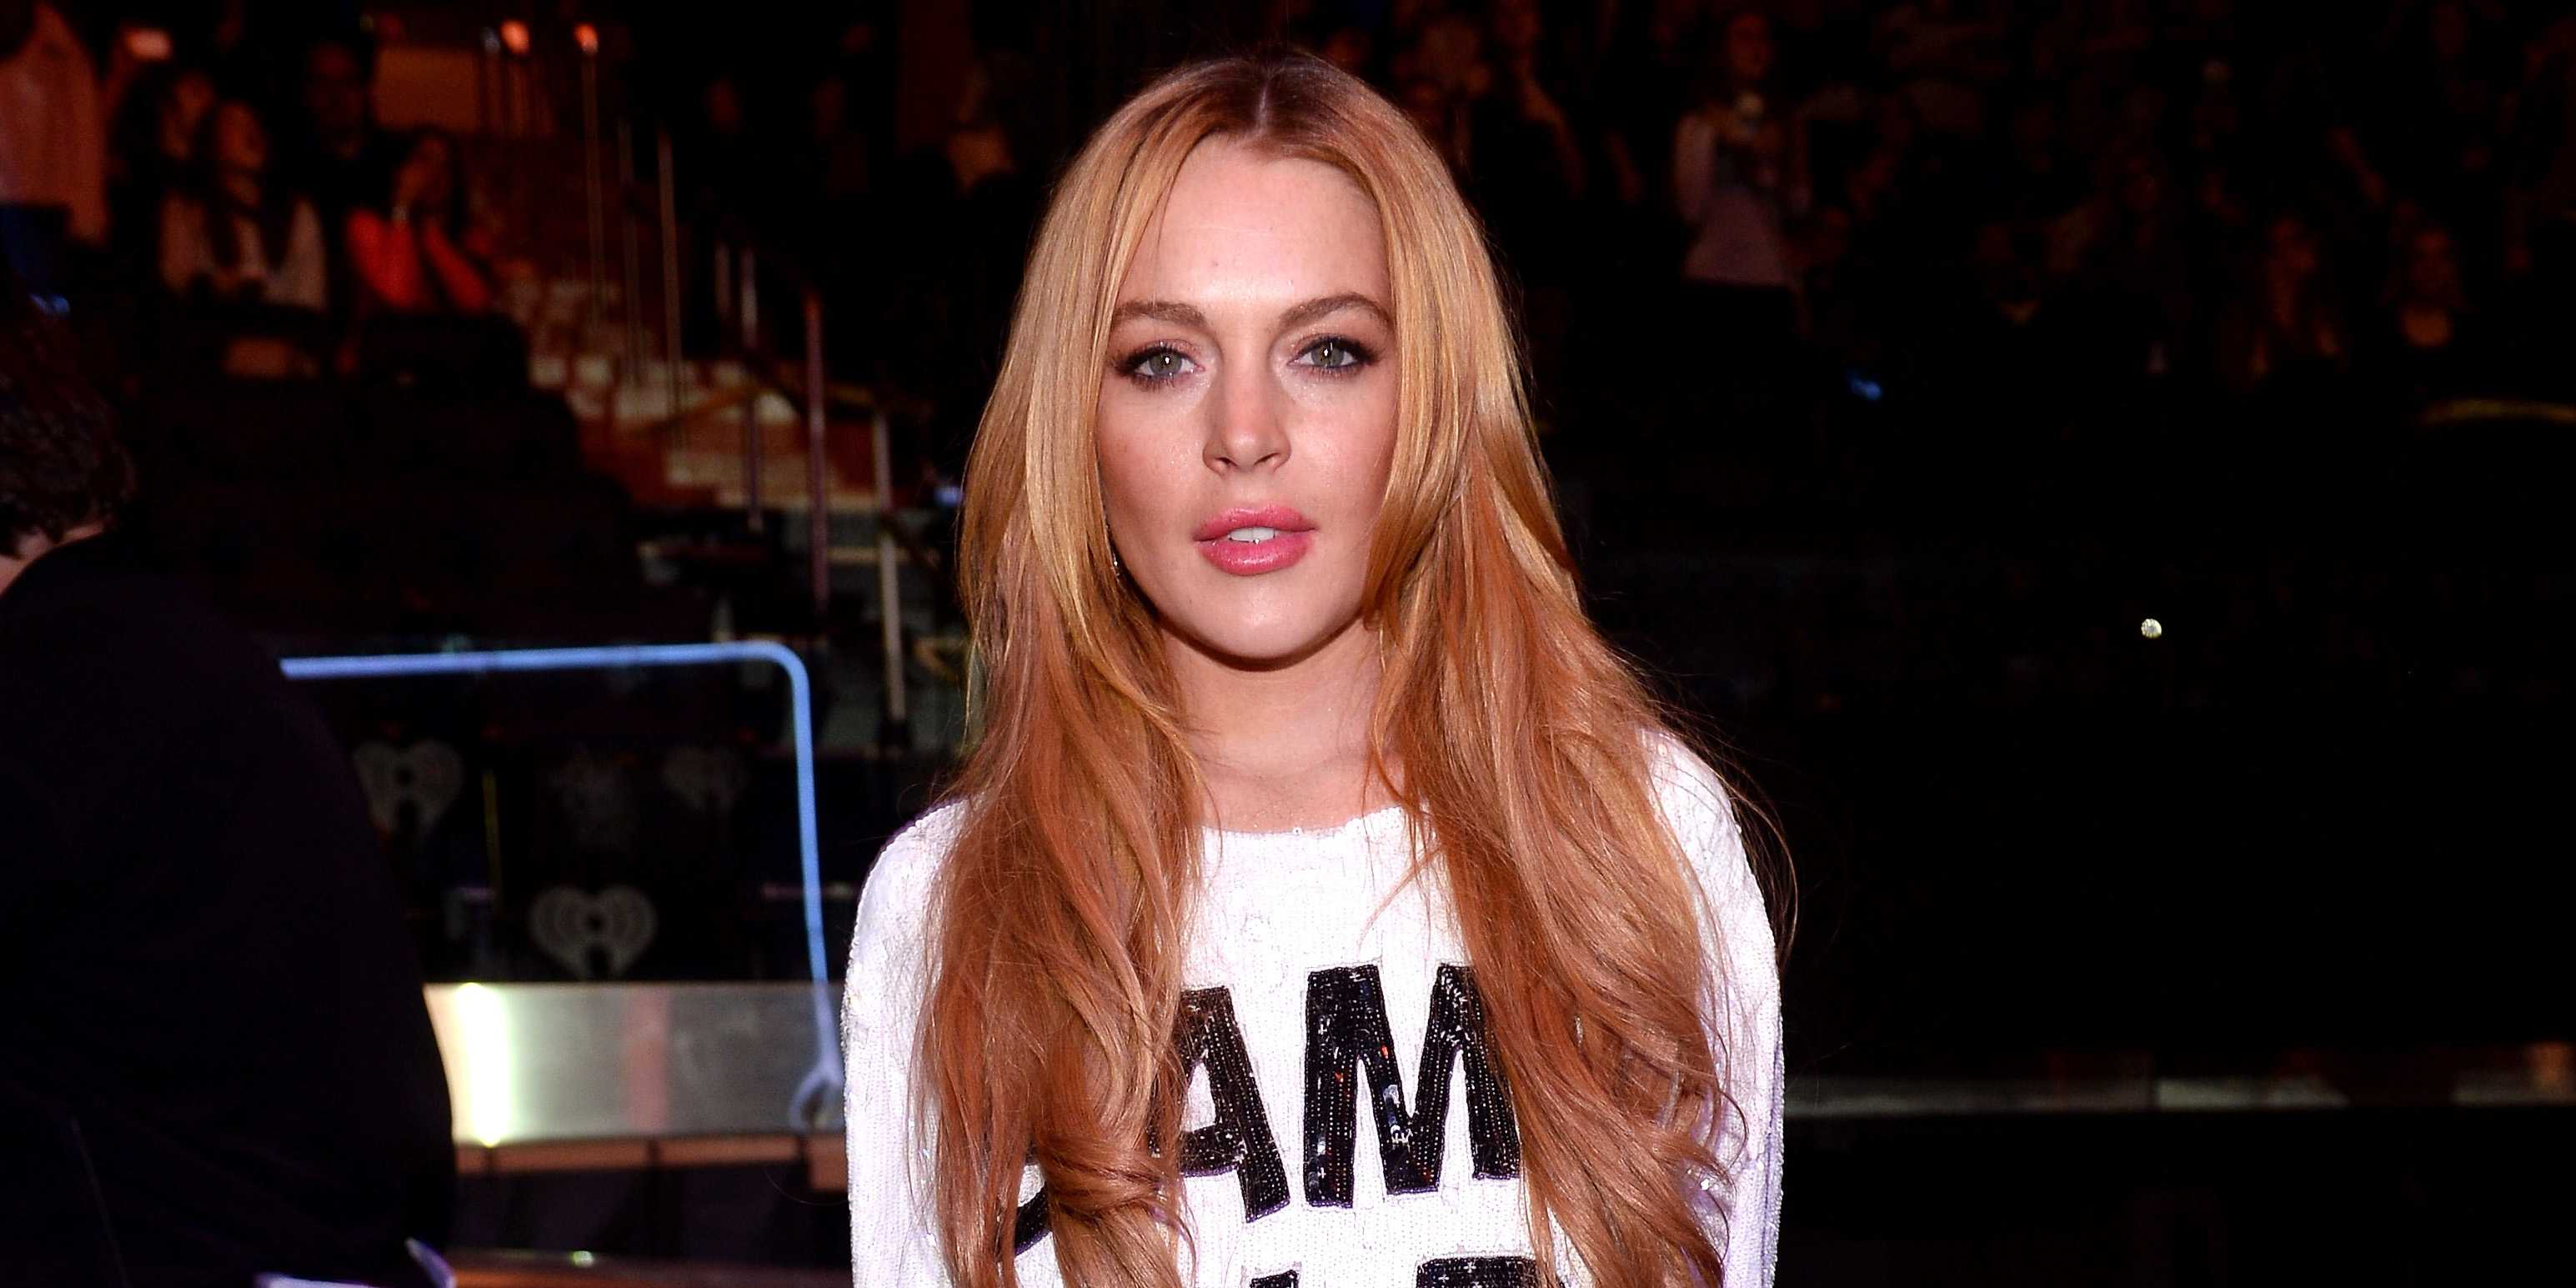 Forum on this topic: Nicola McLean, lindsay-lohan/